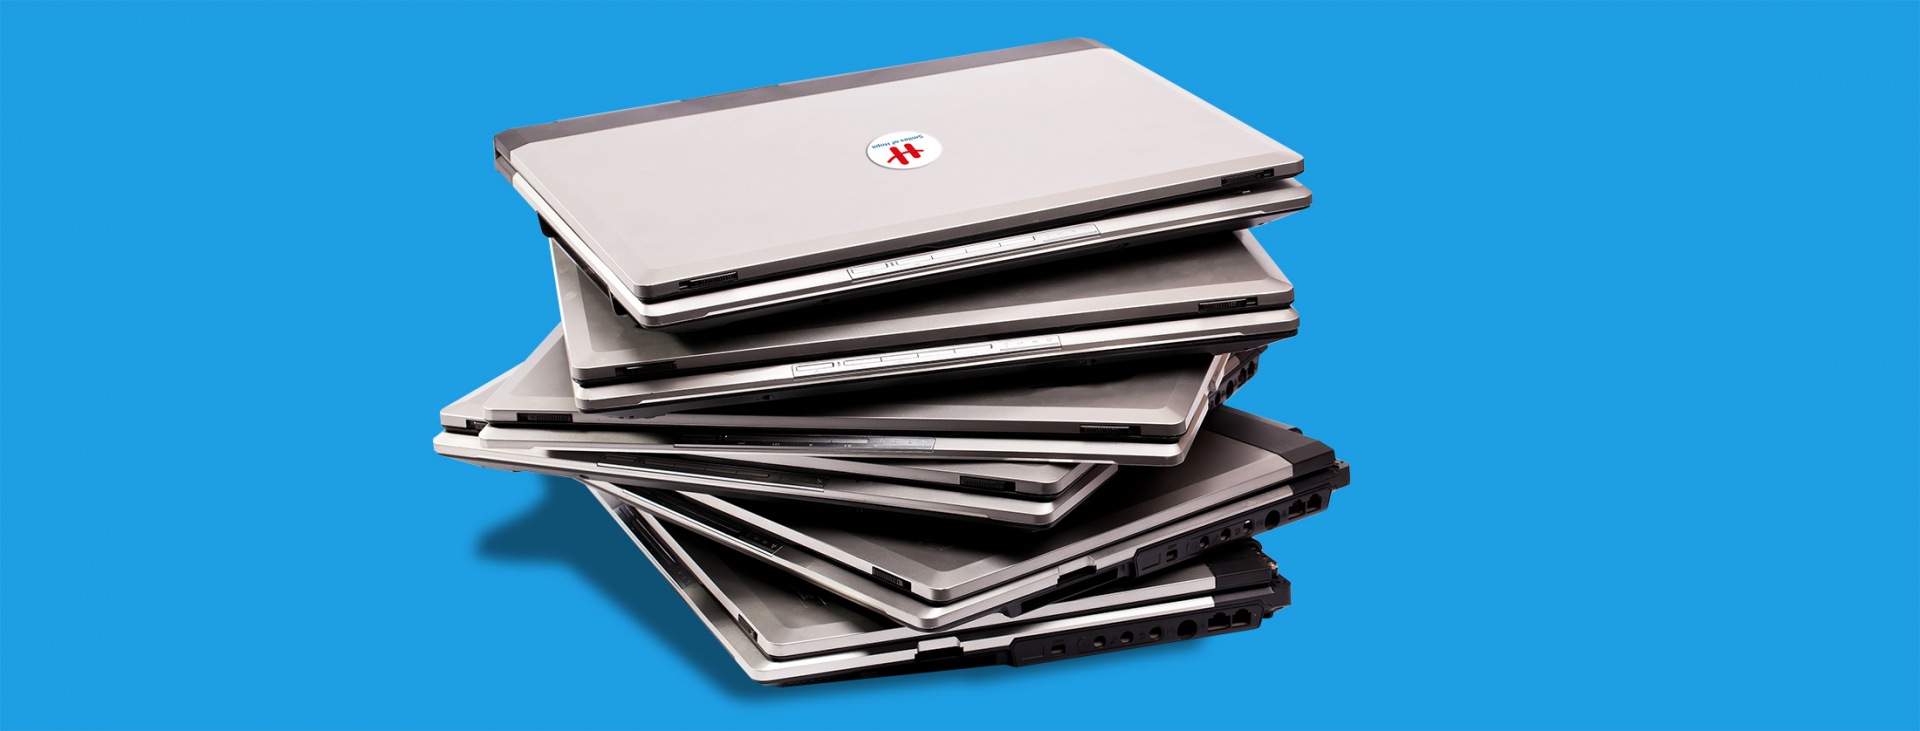 Piles of laptops